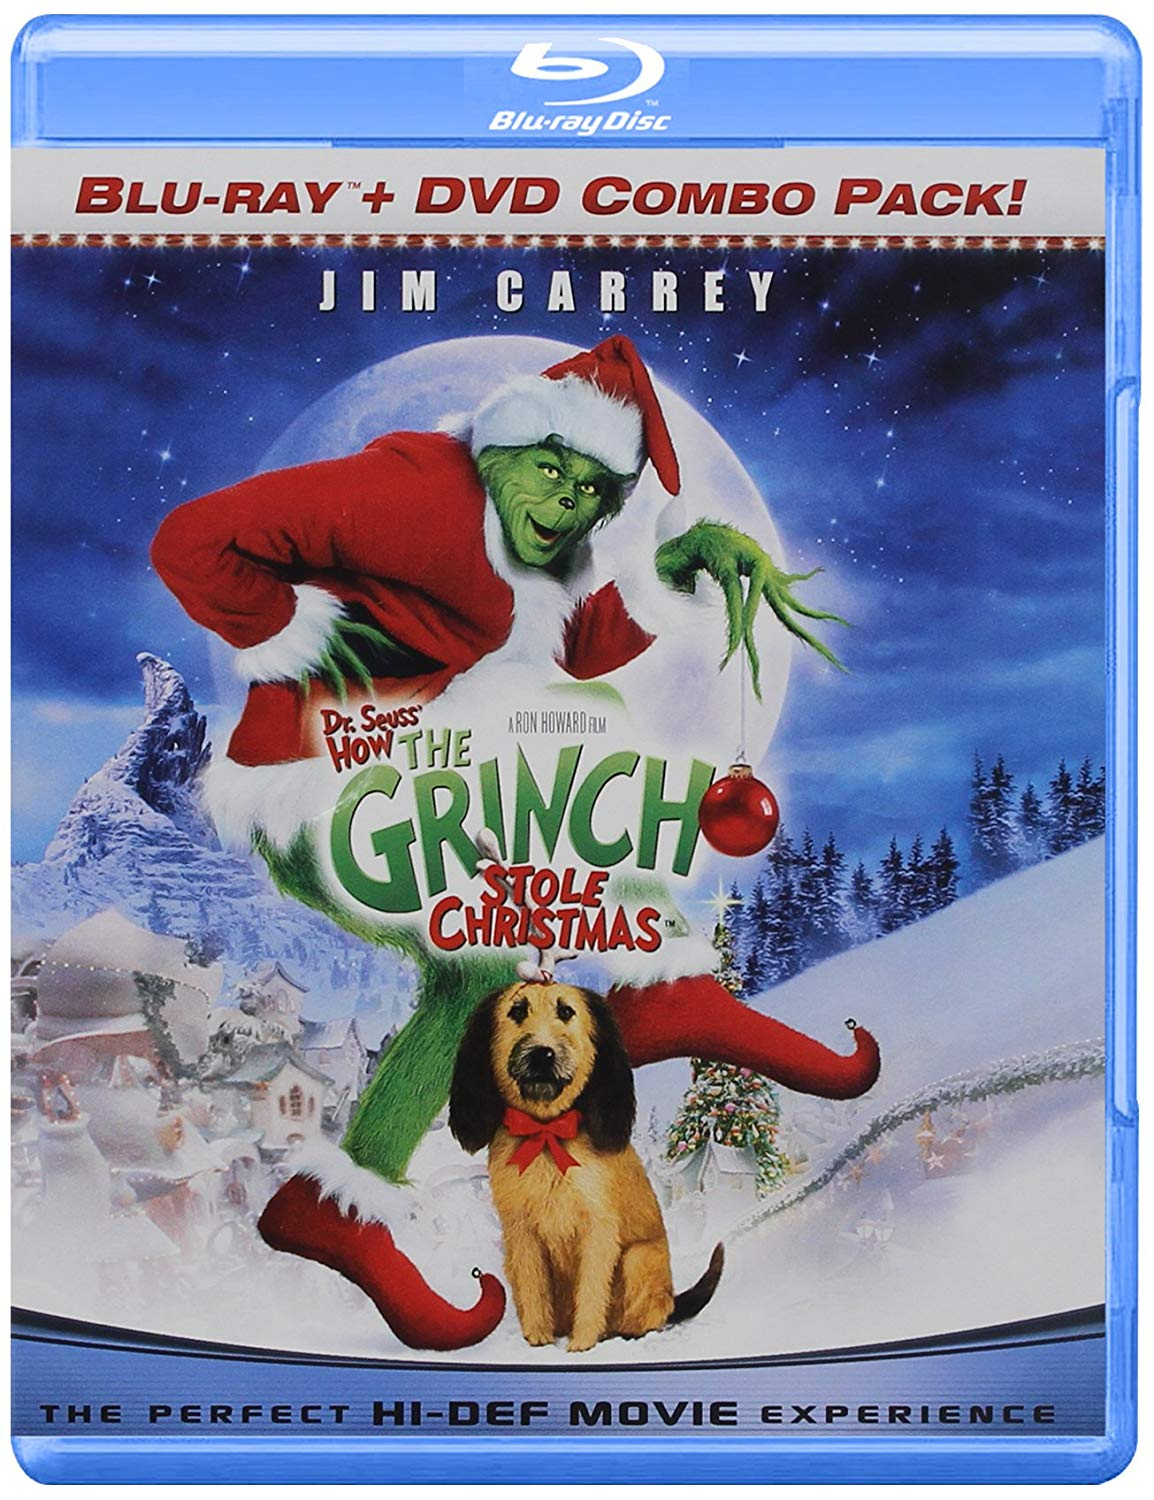 How The Grinch Stole Christmas 2000 Vhs.How The Grinch Stole Christmas Vhs Dvd Blu Ray Twilight